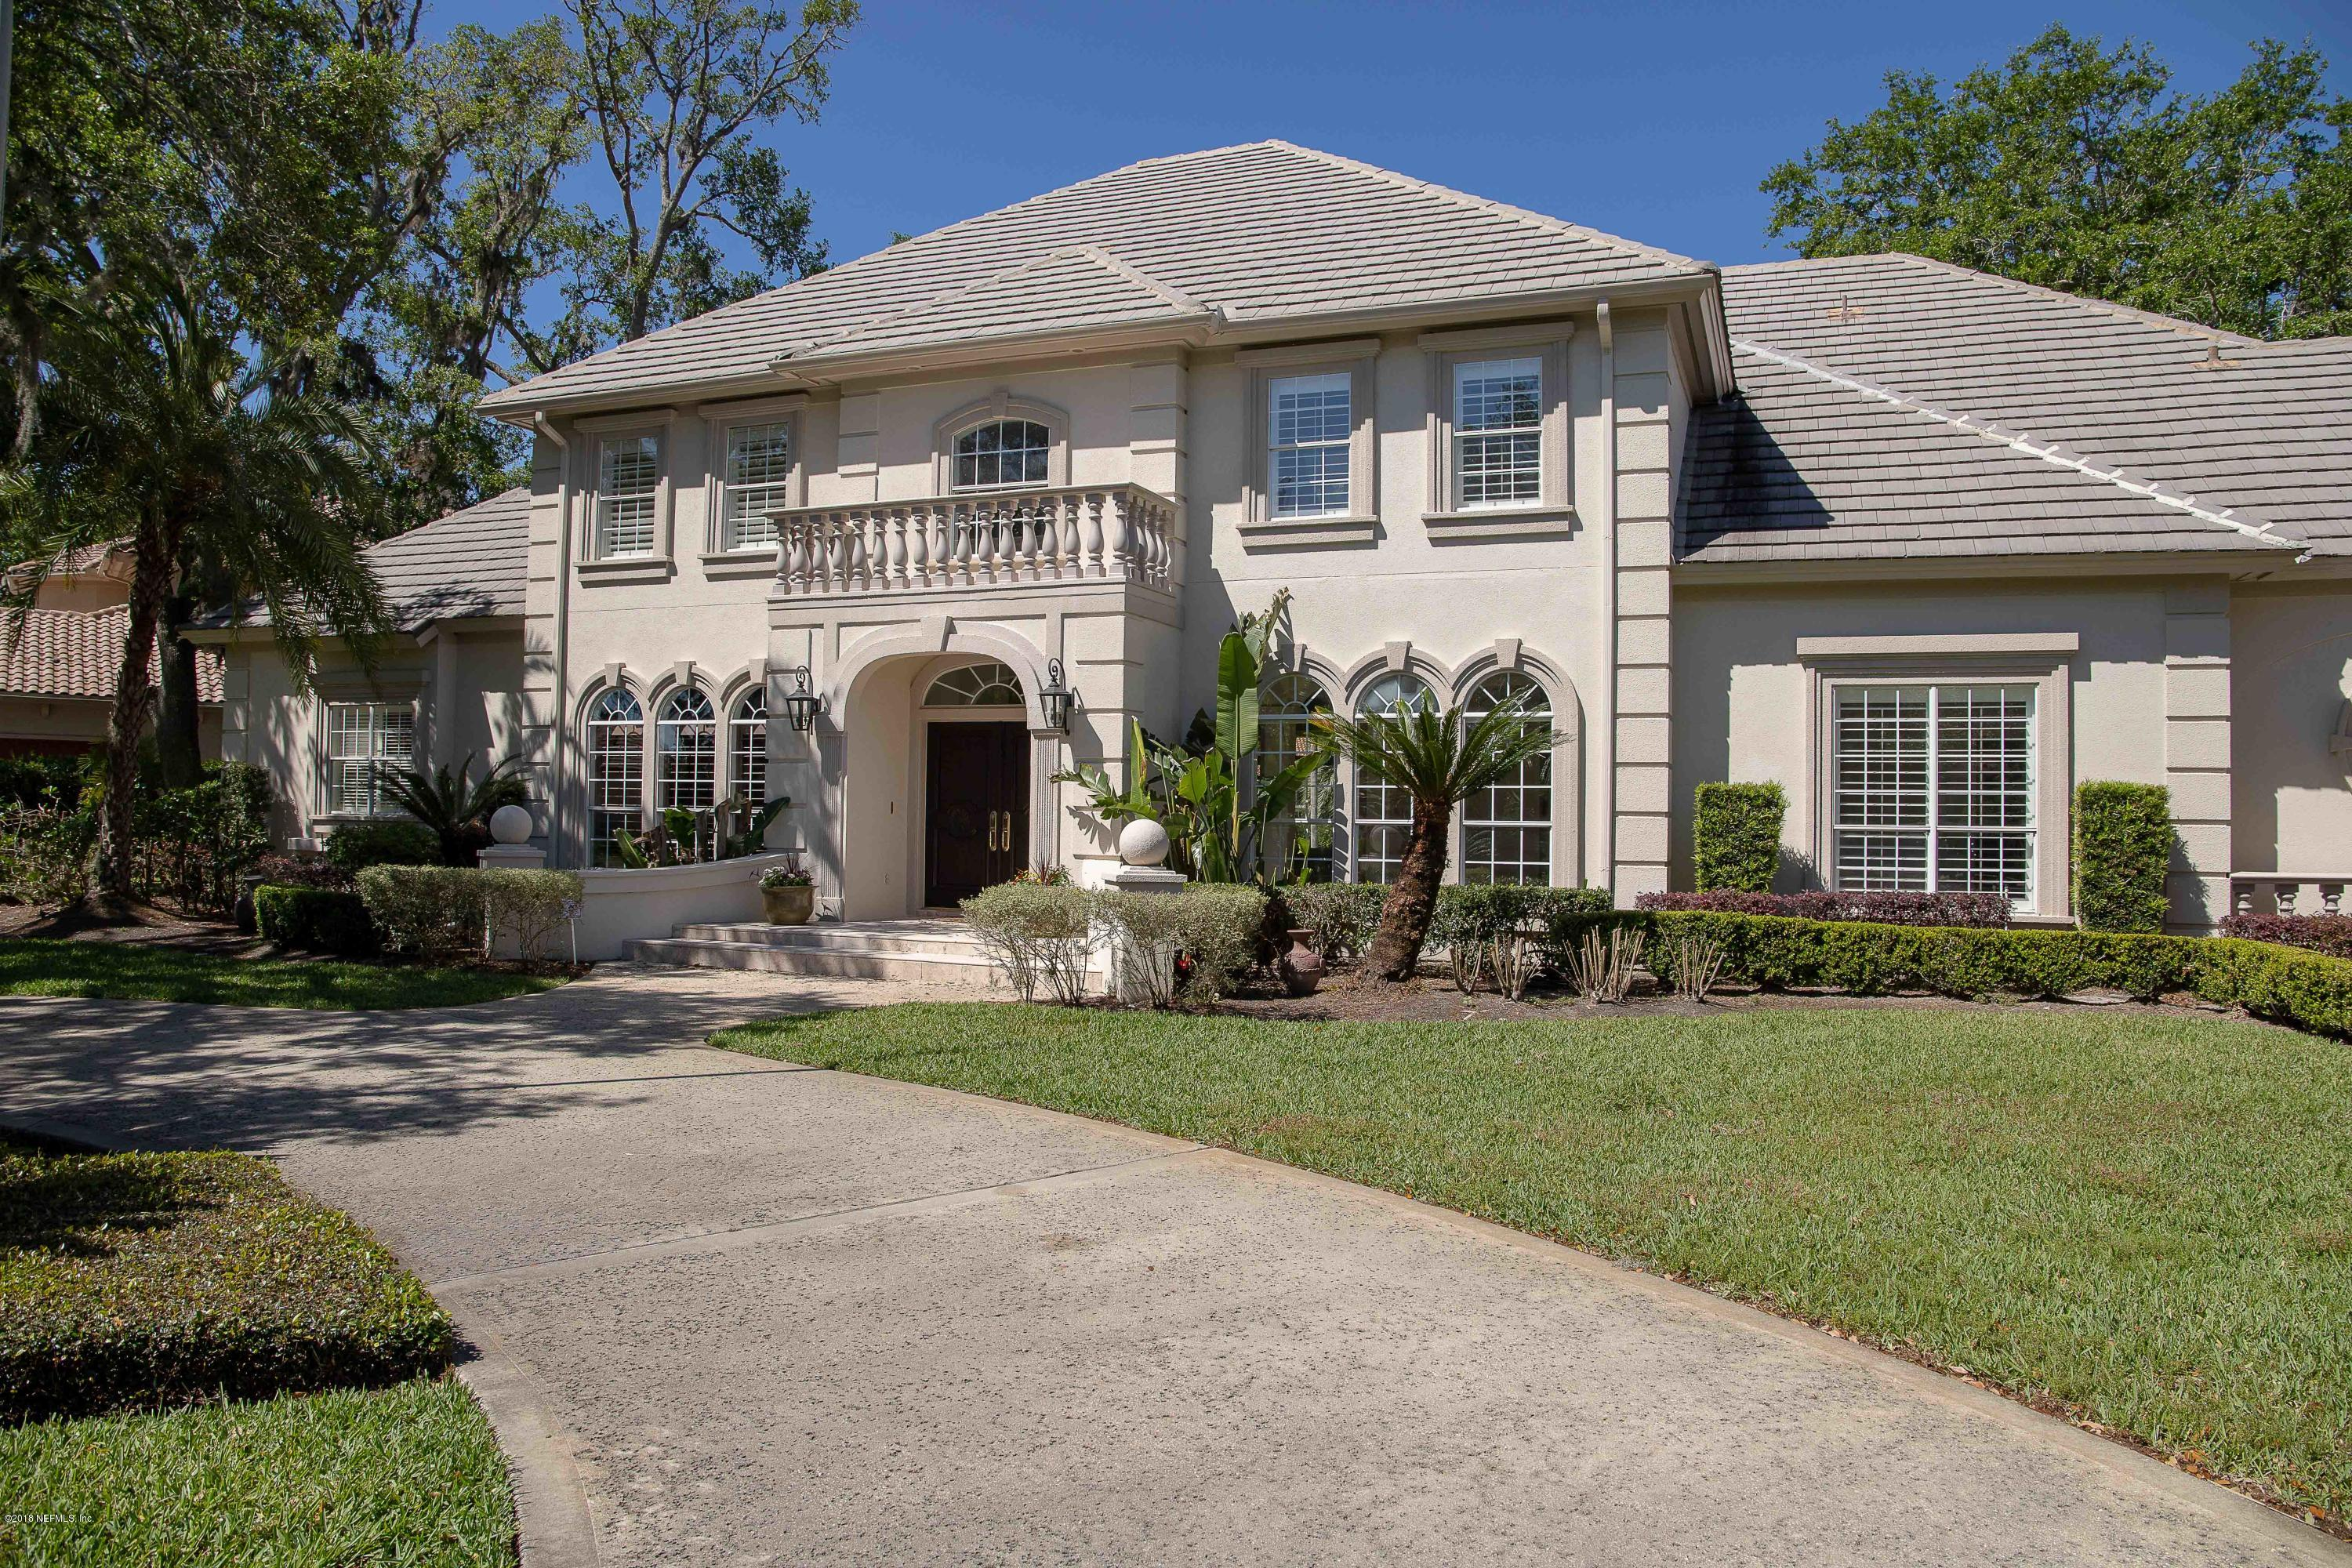 24649 HARBOUR VIEW, PONTE VEDRA BEACH, FLORIDA 32082, 5 Bedrooms Bedrooms, ,6 BathroomsBathrooms,Residential - single family,For sale,HARBOUR VIEW,930314